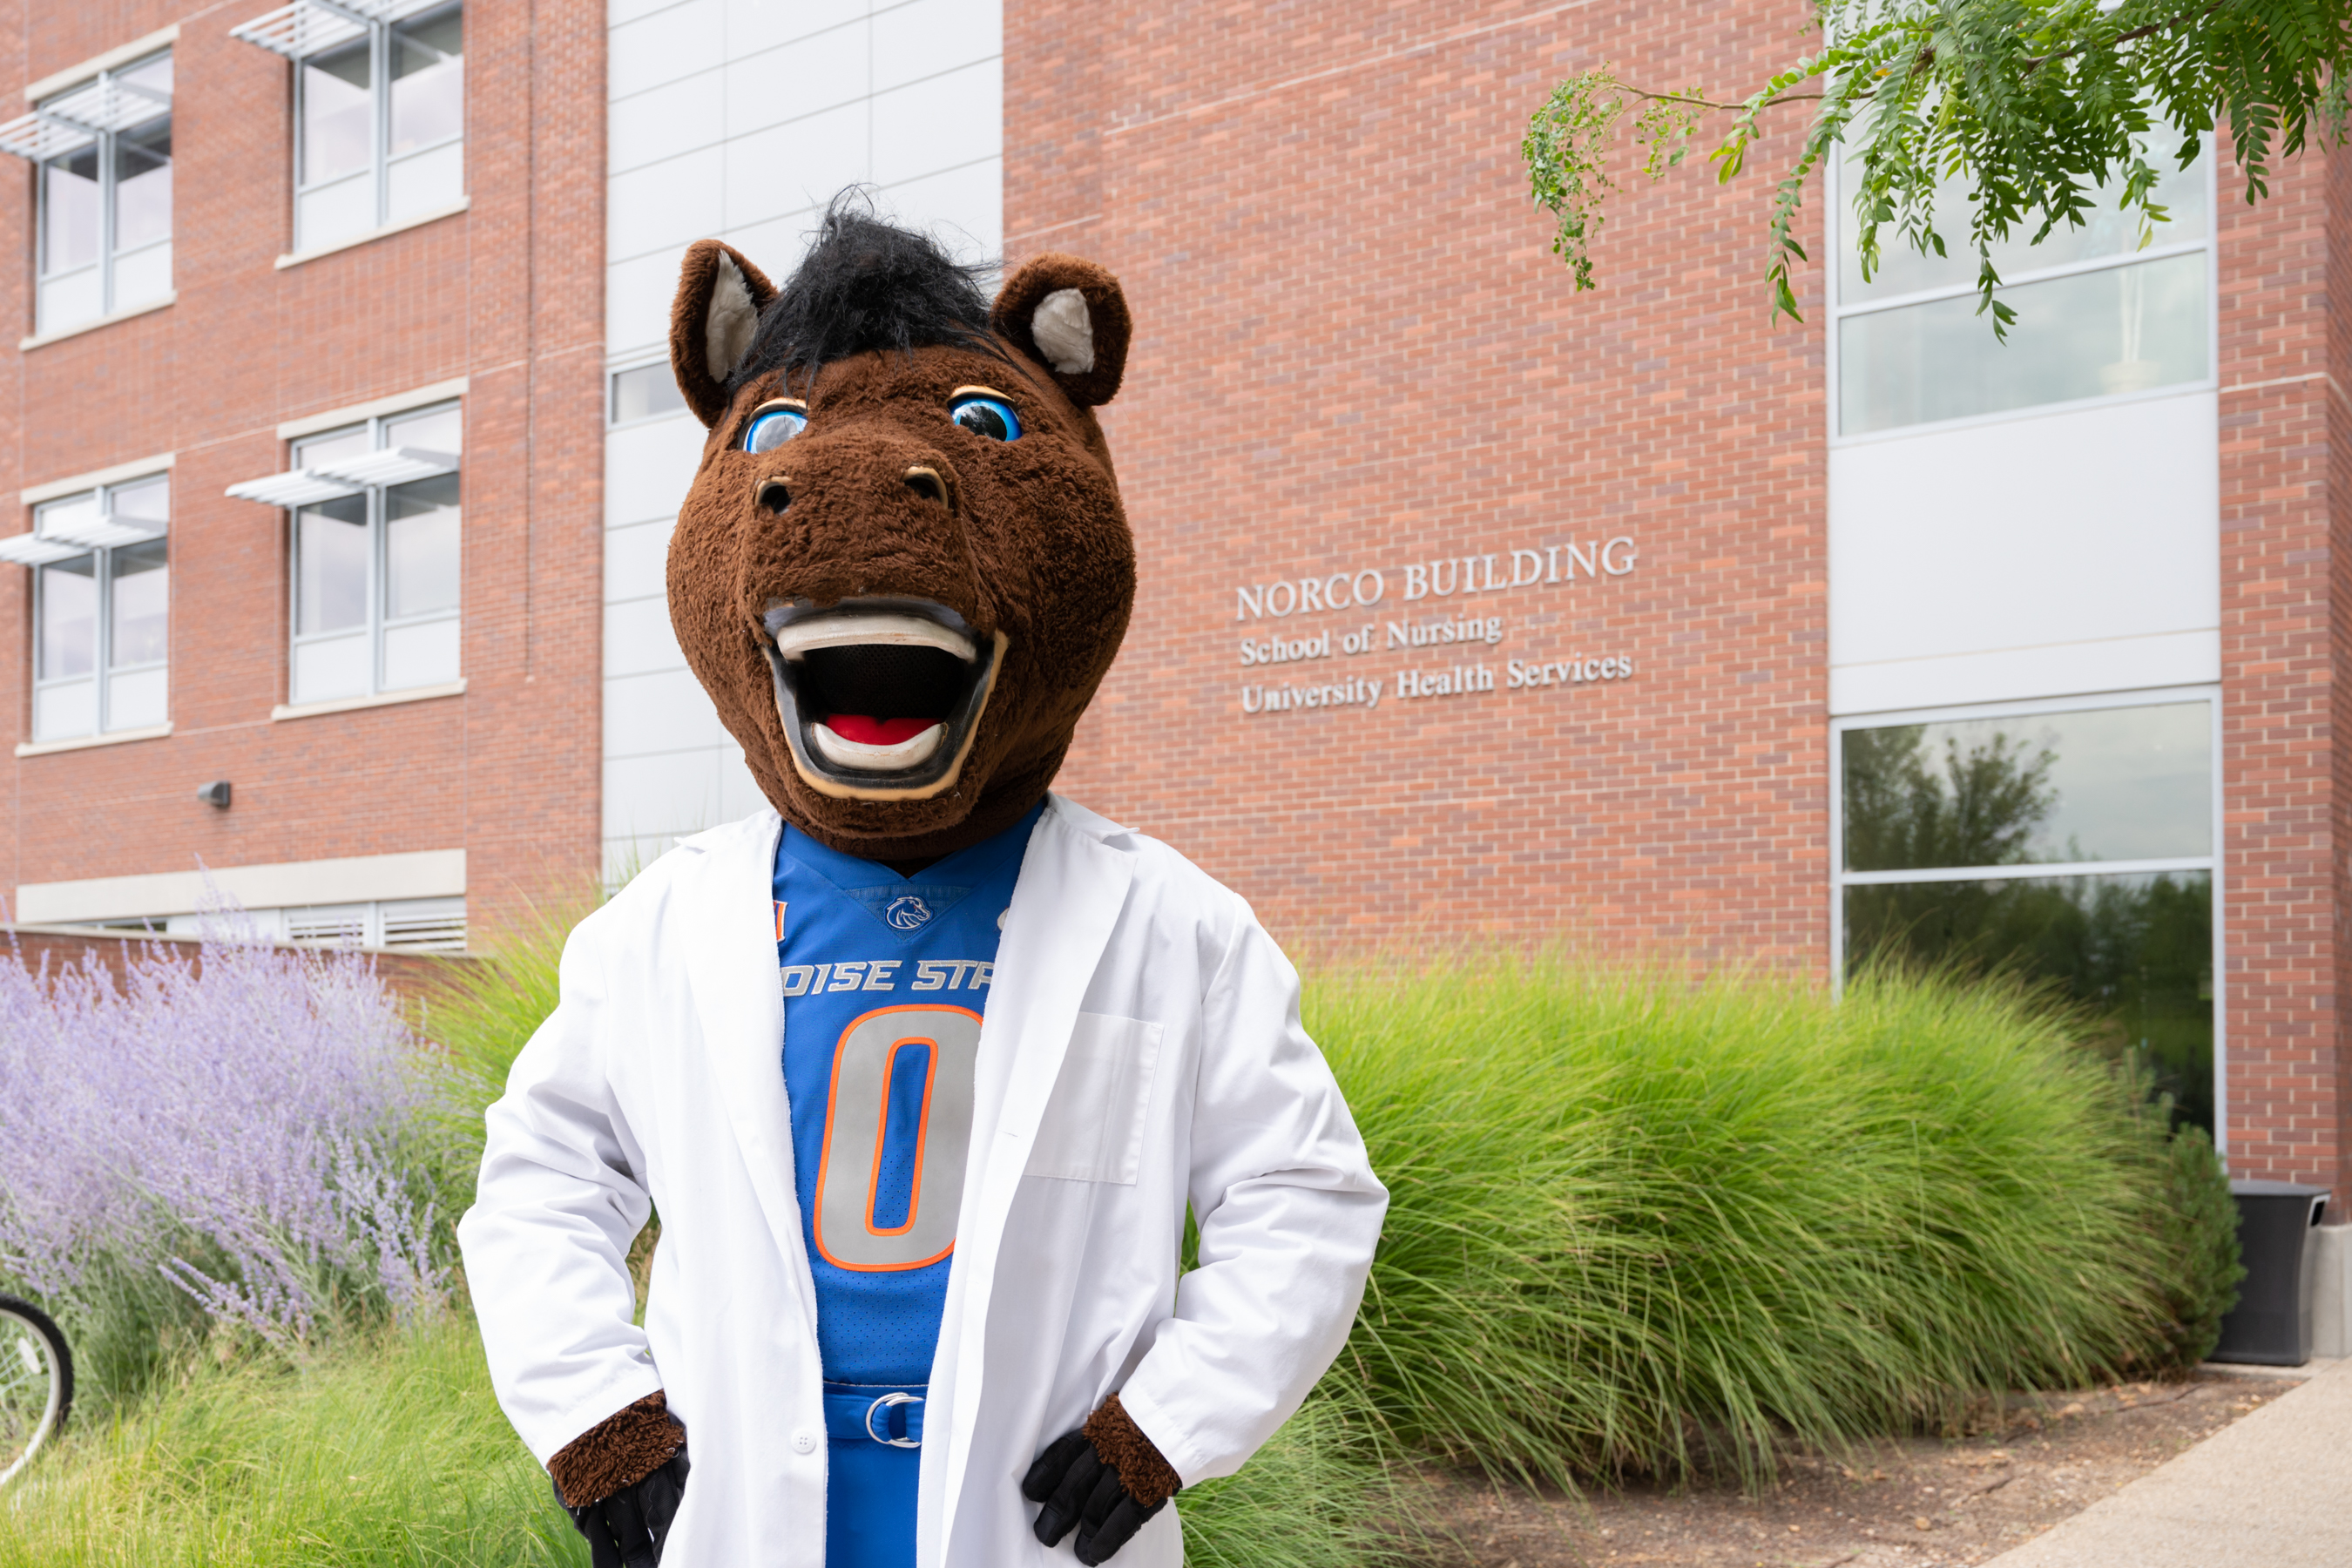 Buster outside of the School of Nursing